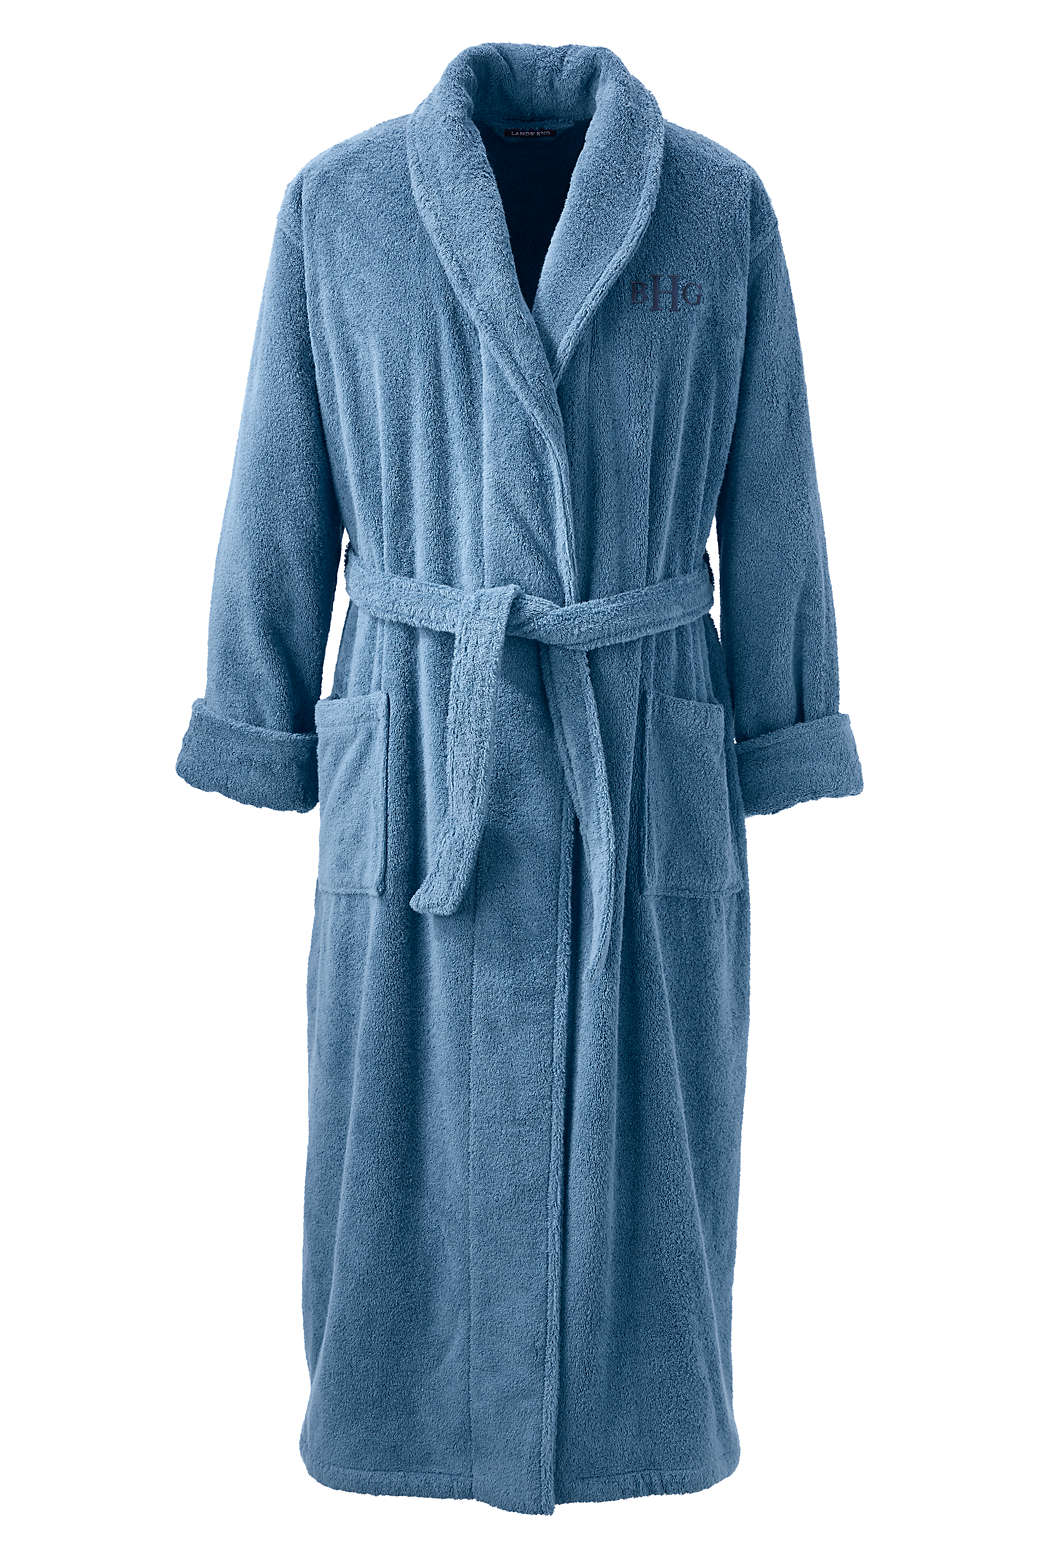 cddcb25bbf9 Men s Full Length Turkish Terry Robe from Lands  End